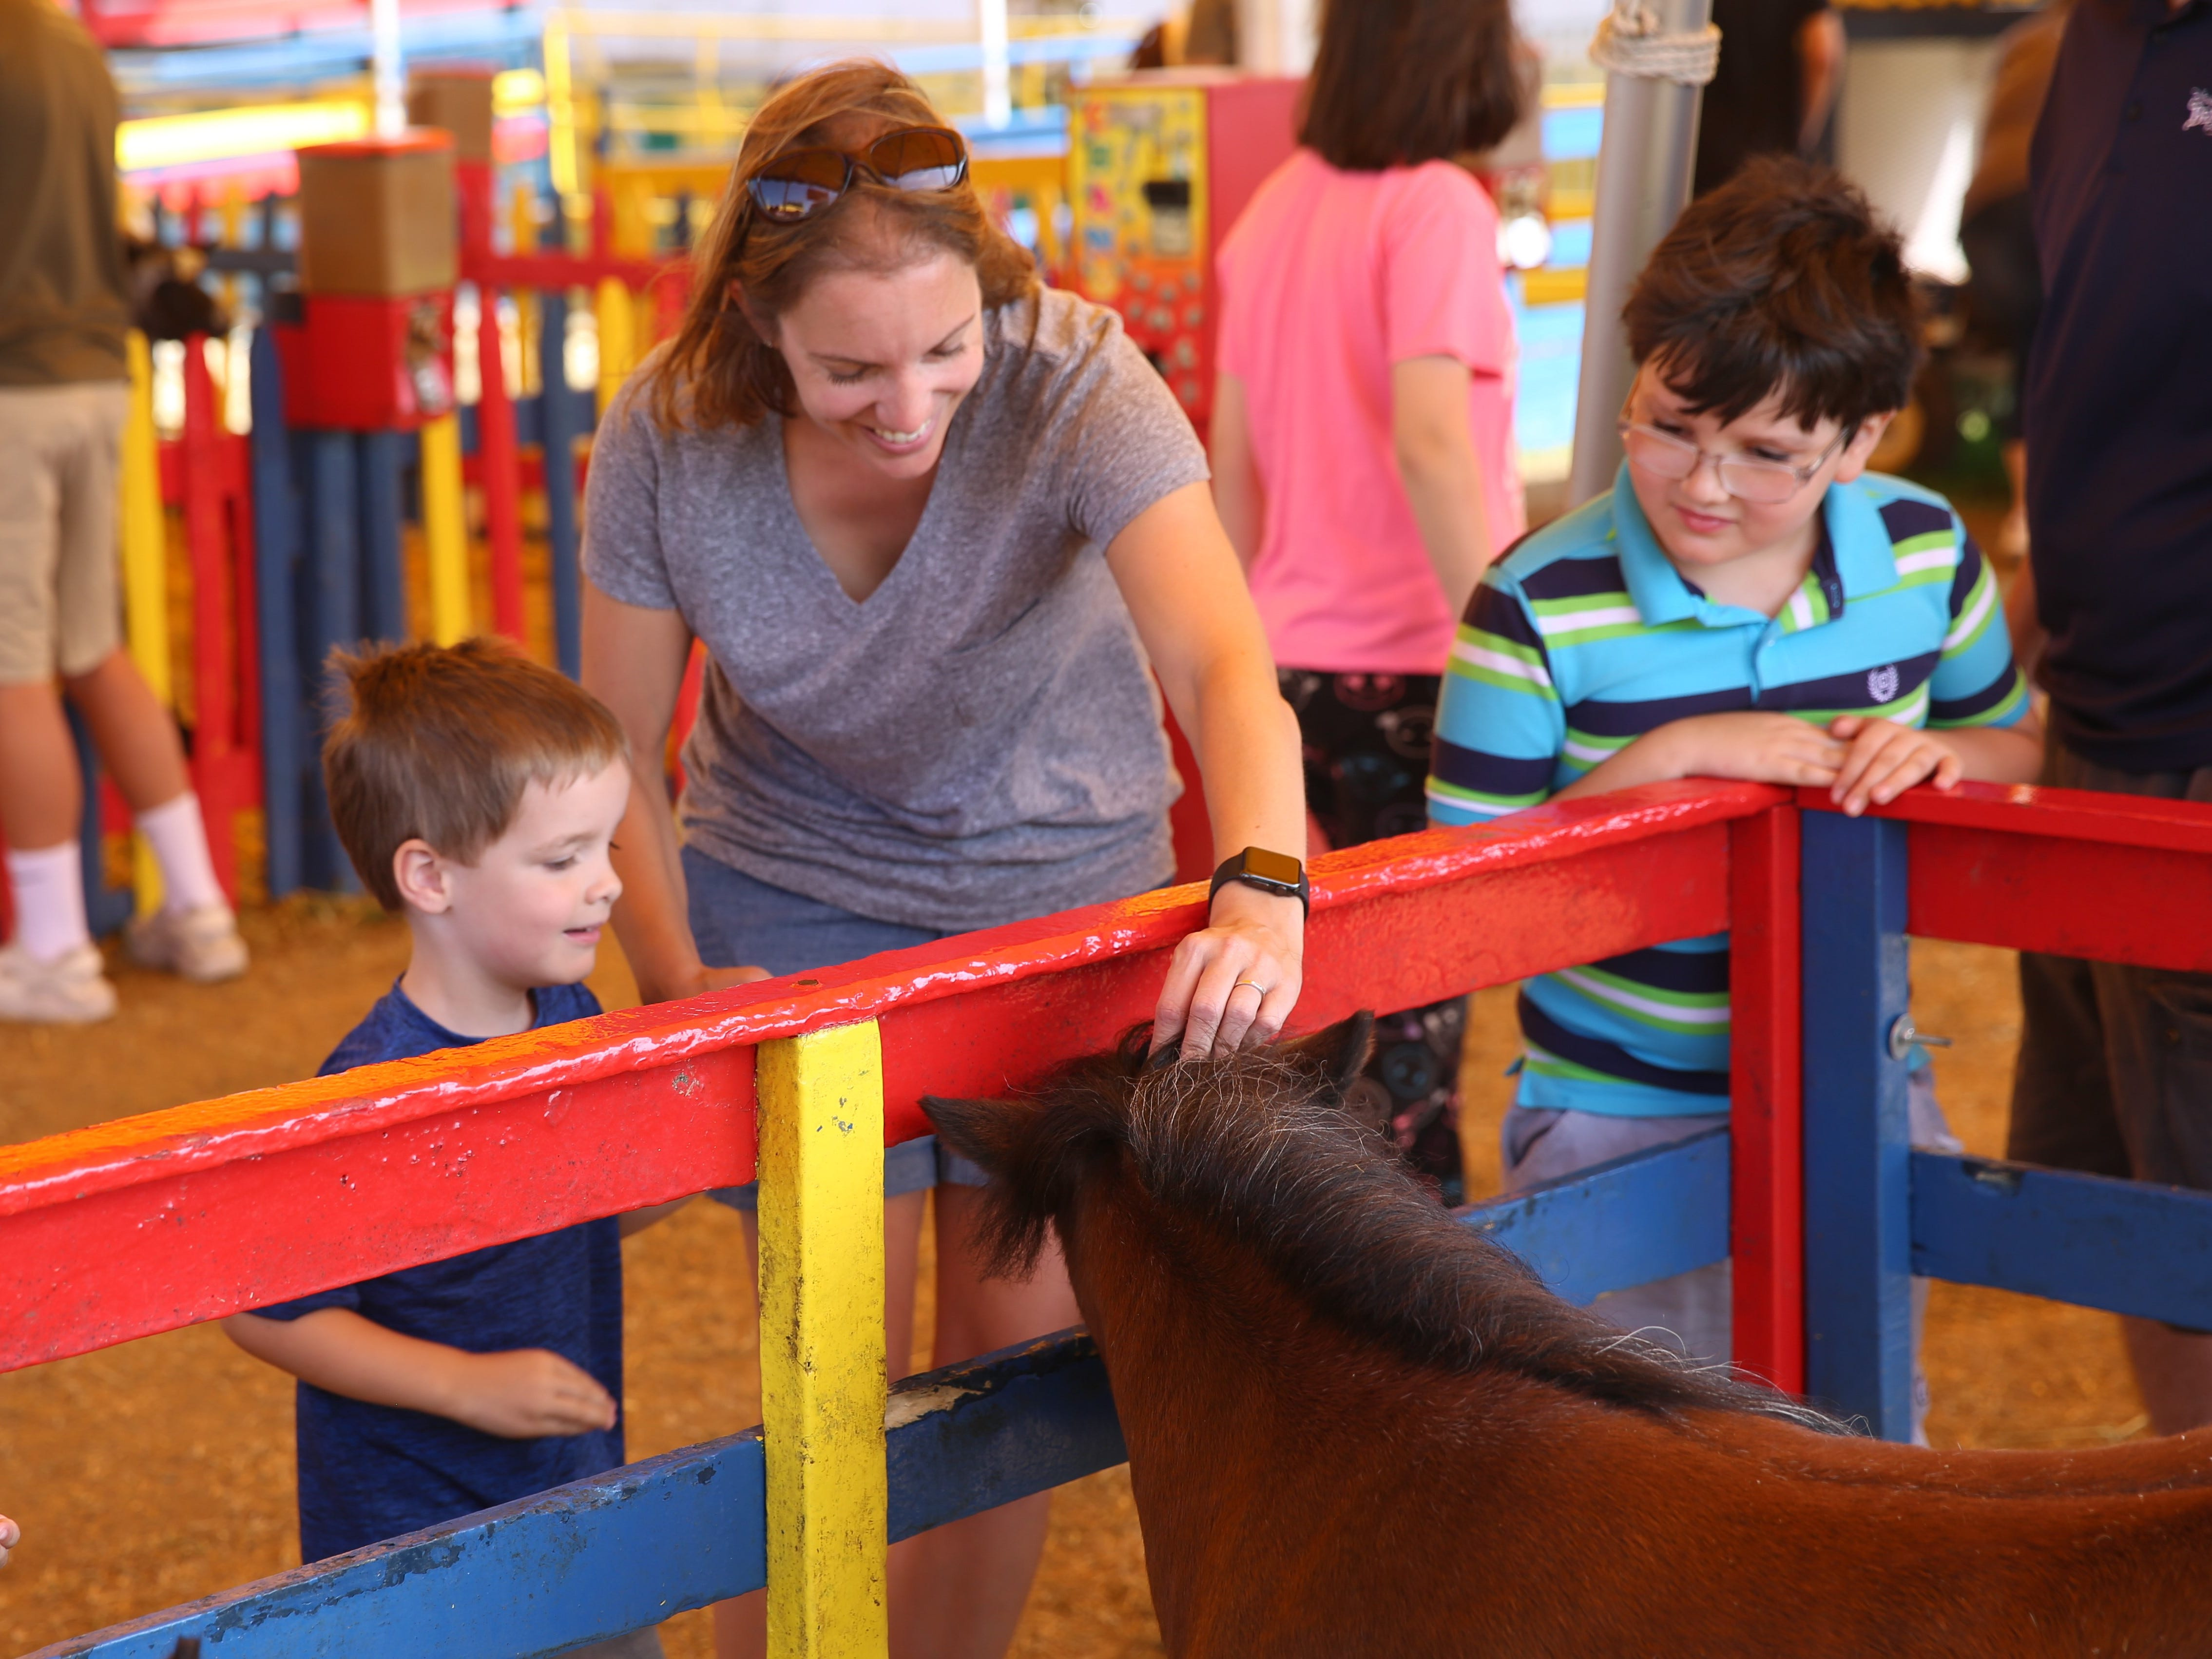 Karen Adamec (center), of Highland, pets a miniature horse alongside her 3-year-old son, Liam Adamec (left), and 8-year-old son Andrew Adamec (right). She said she likes that there are so many options at the Dutchess County Fair.